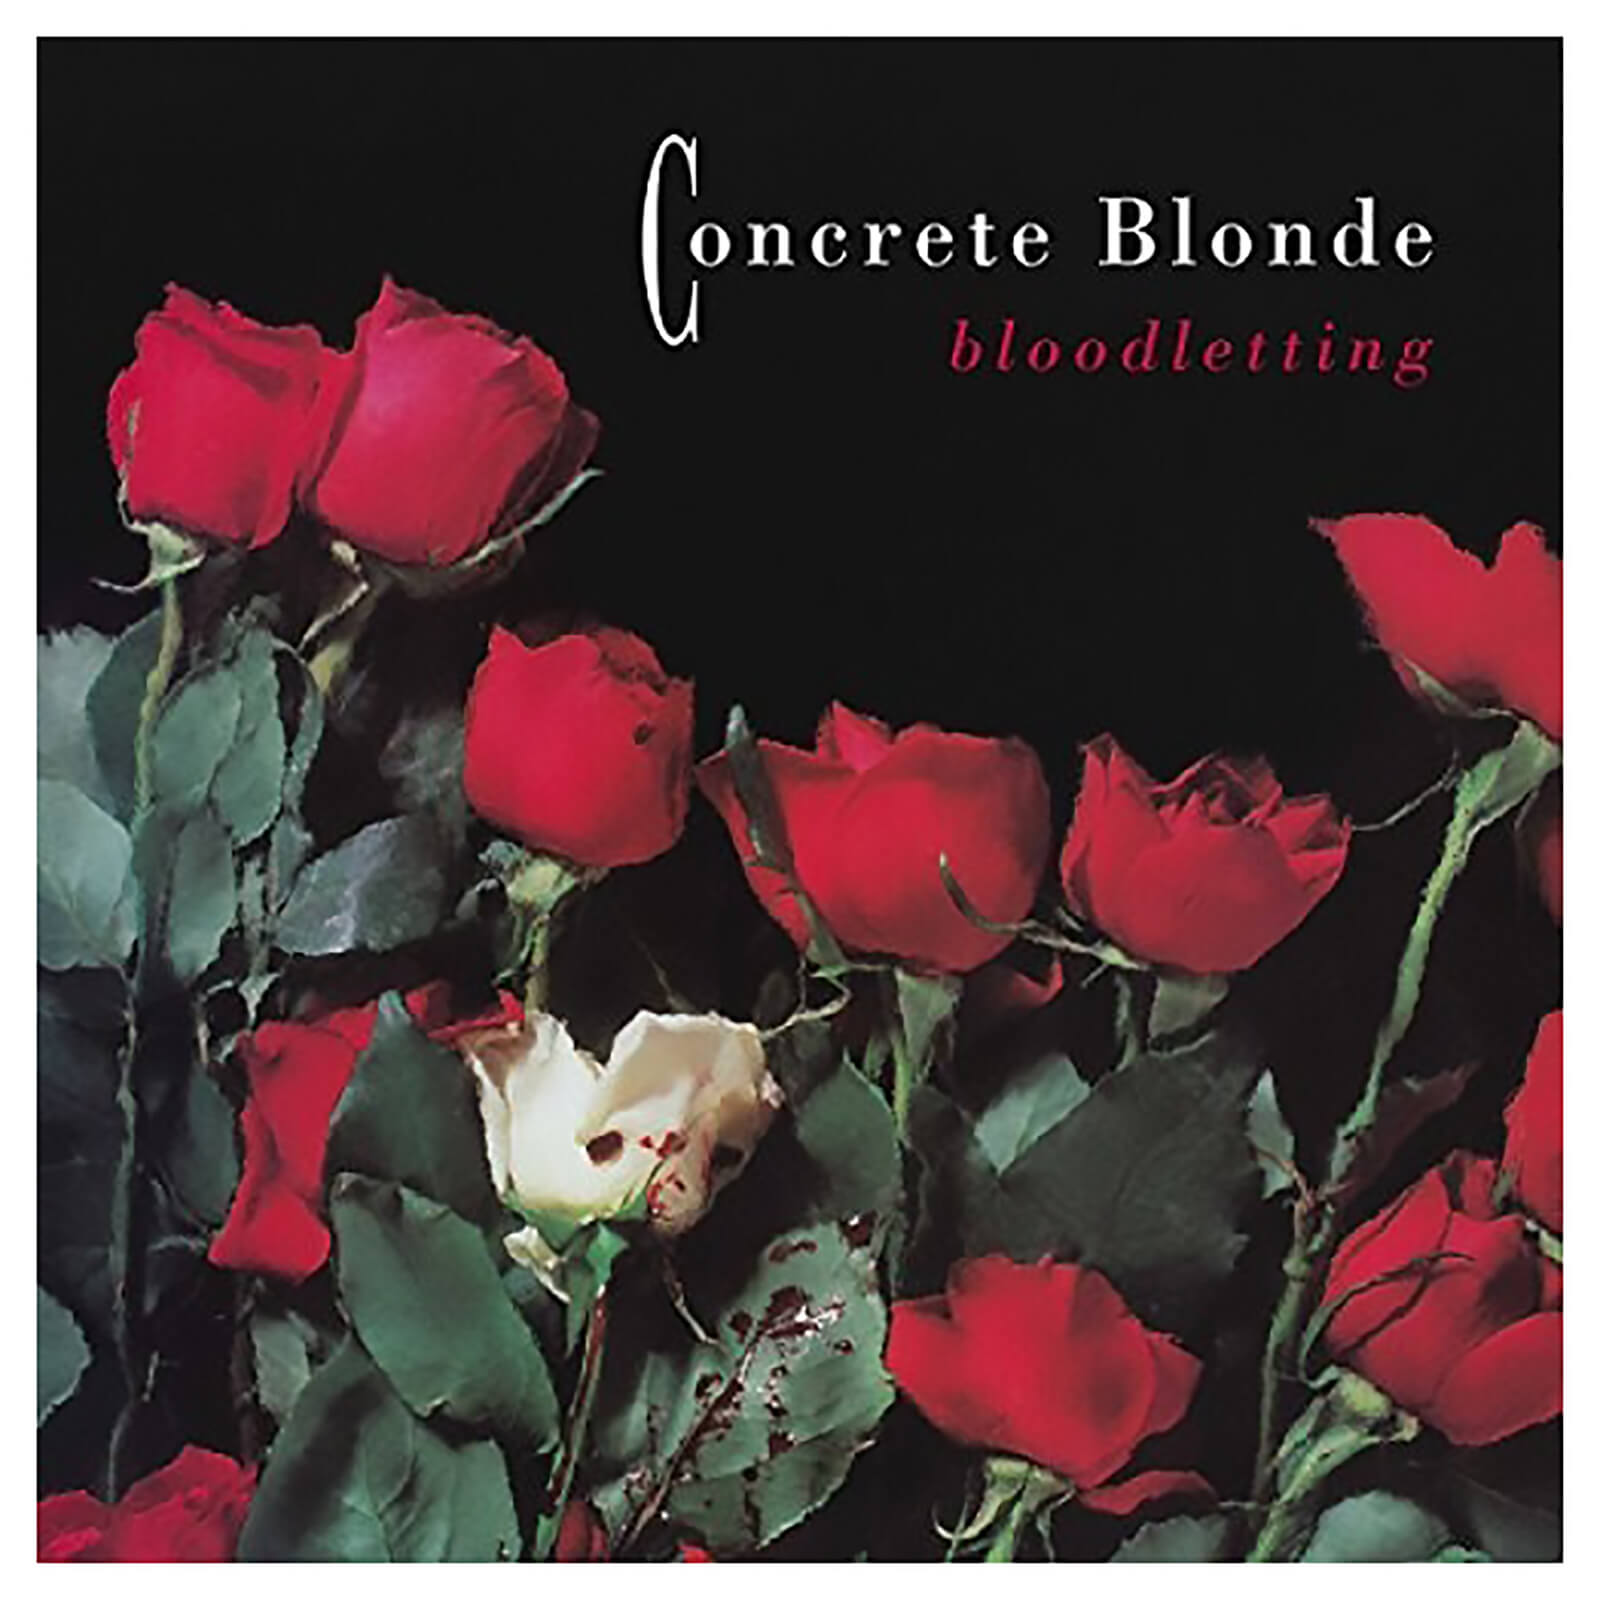 Concrete Blonde - Bloodletting - Vinyl